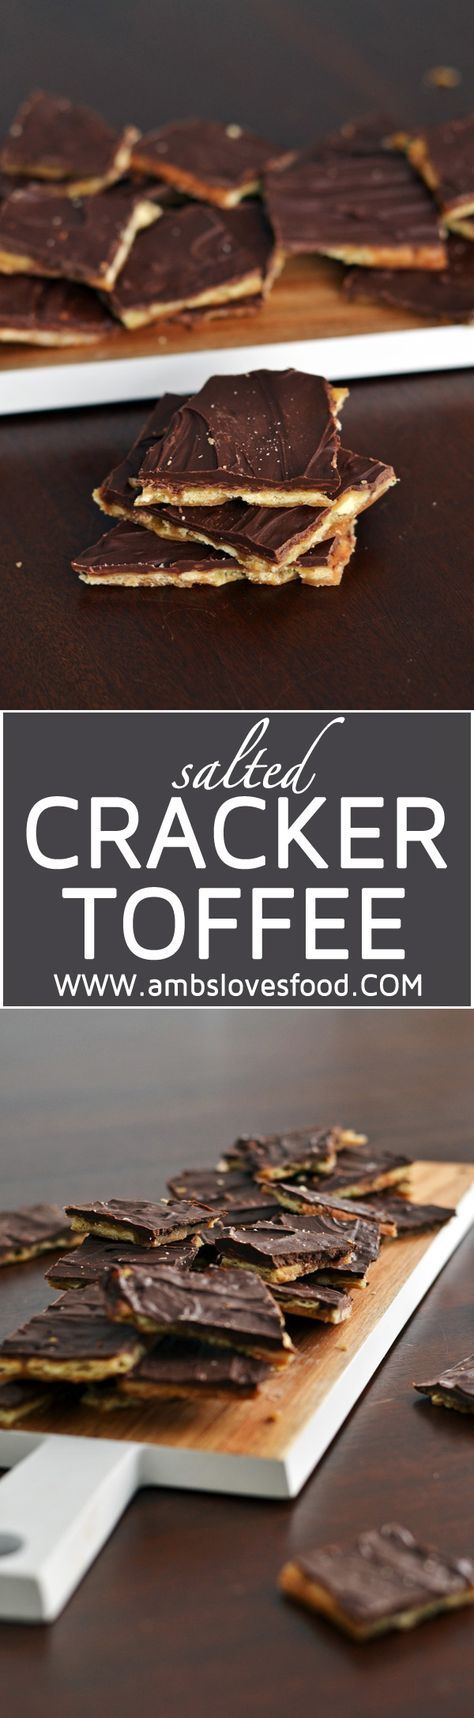 Salted Cracker Toffee made with an easy base of saltine crackers, layered with homemade caramel and topped with semi-sweet chocolate chips.